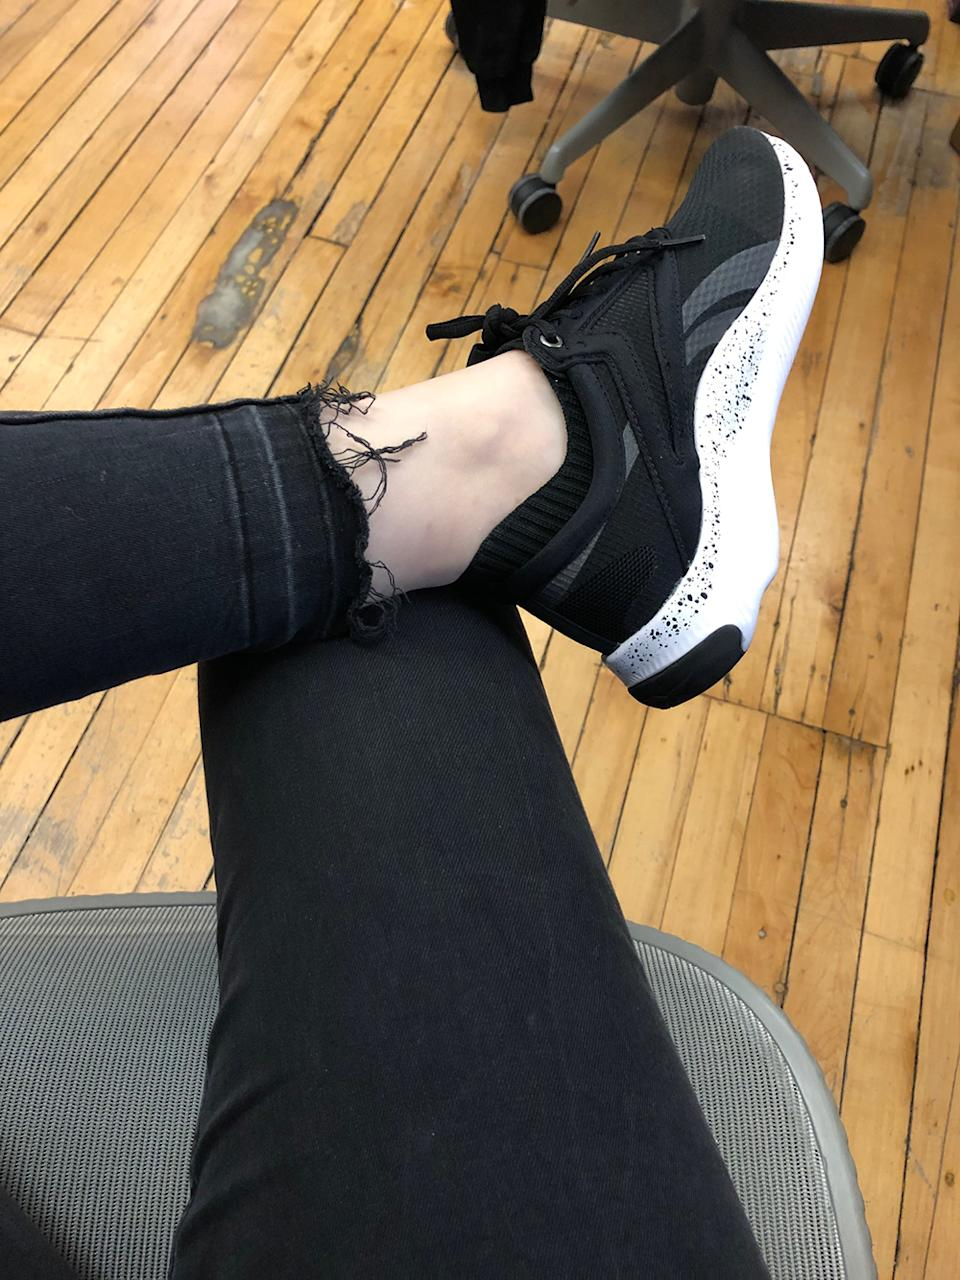 Zara jeans and Reebok? A match made in heaven.